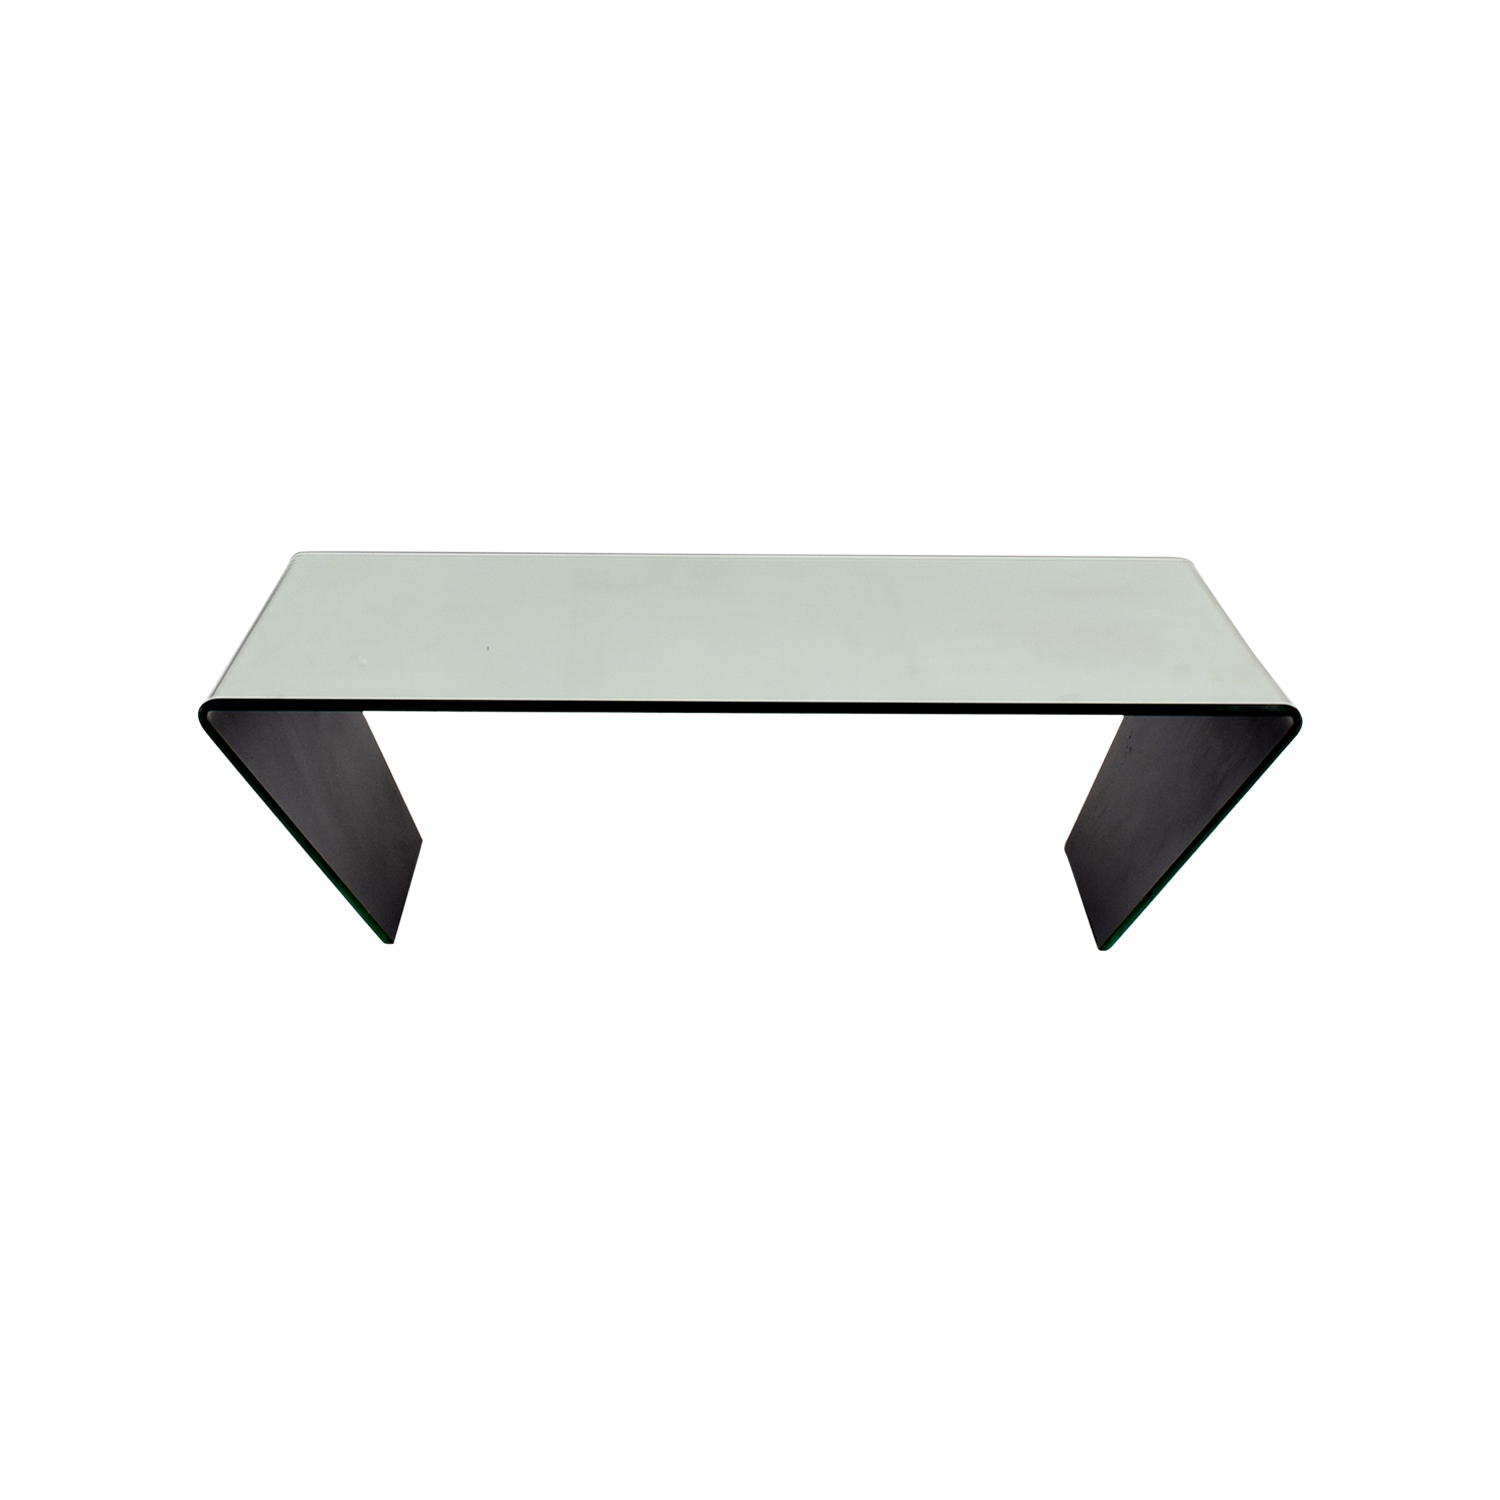 J & M Furniture J & M Furniture Bent Mirrored Coffee Table for sale